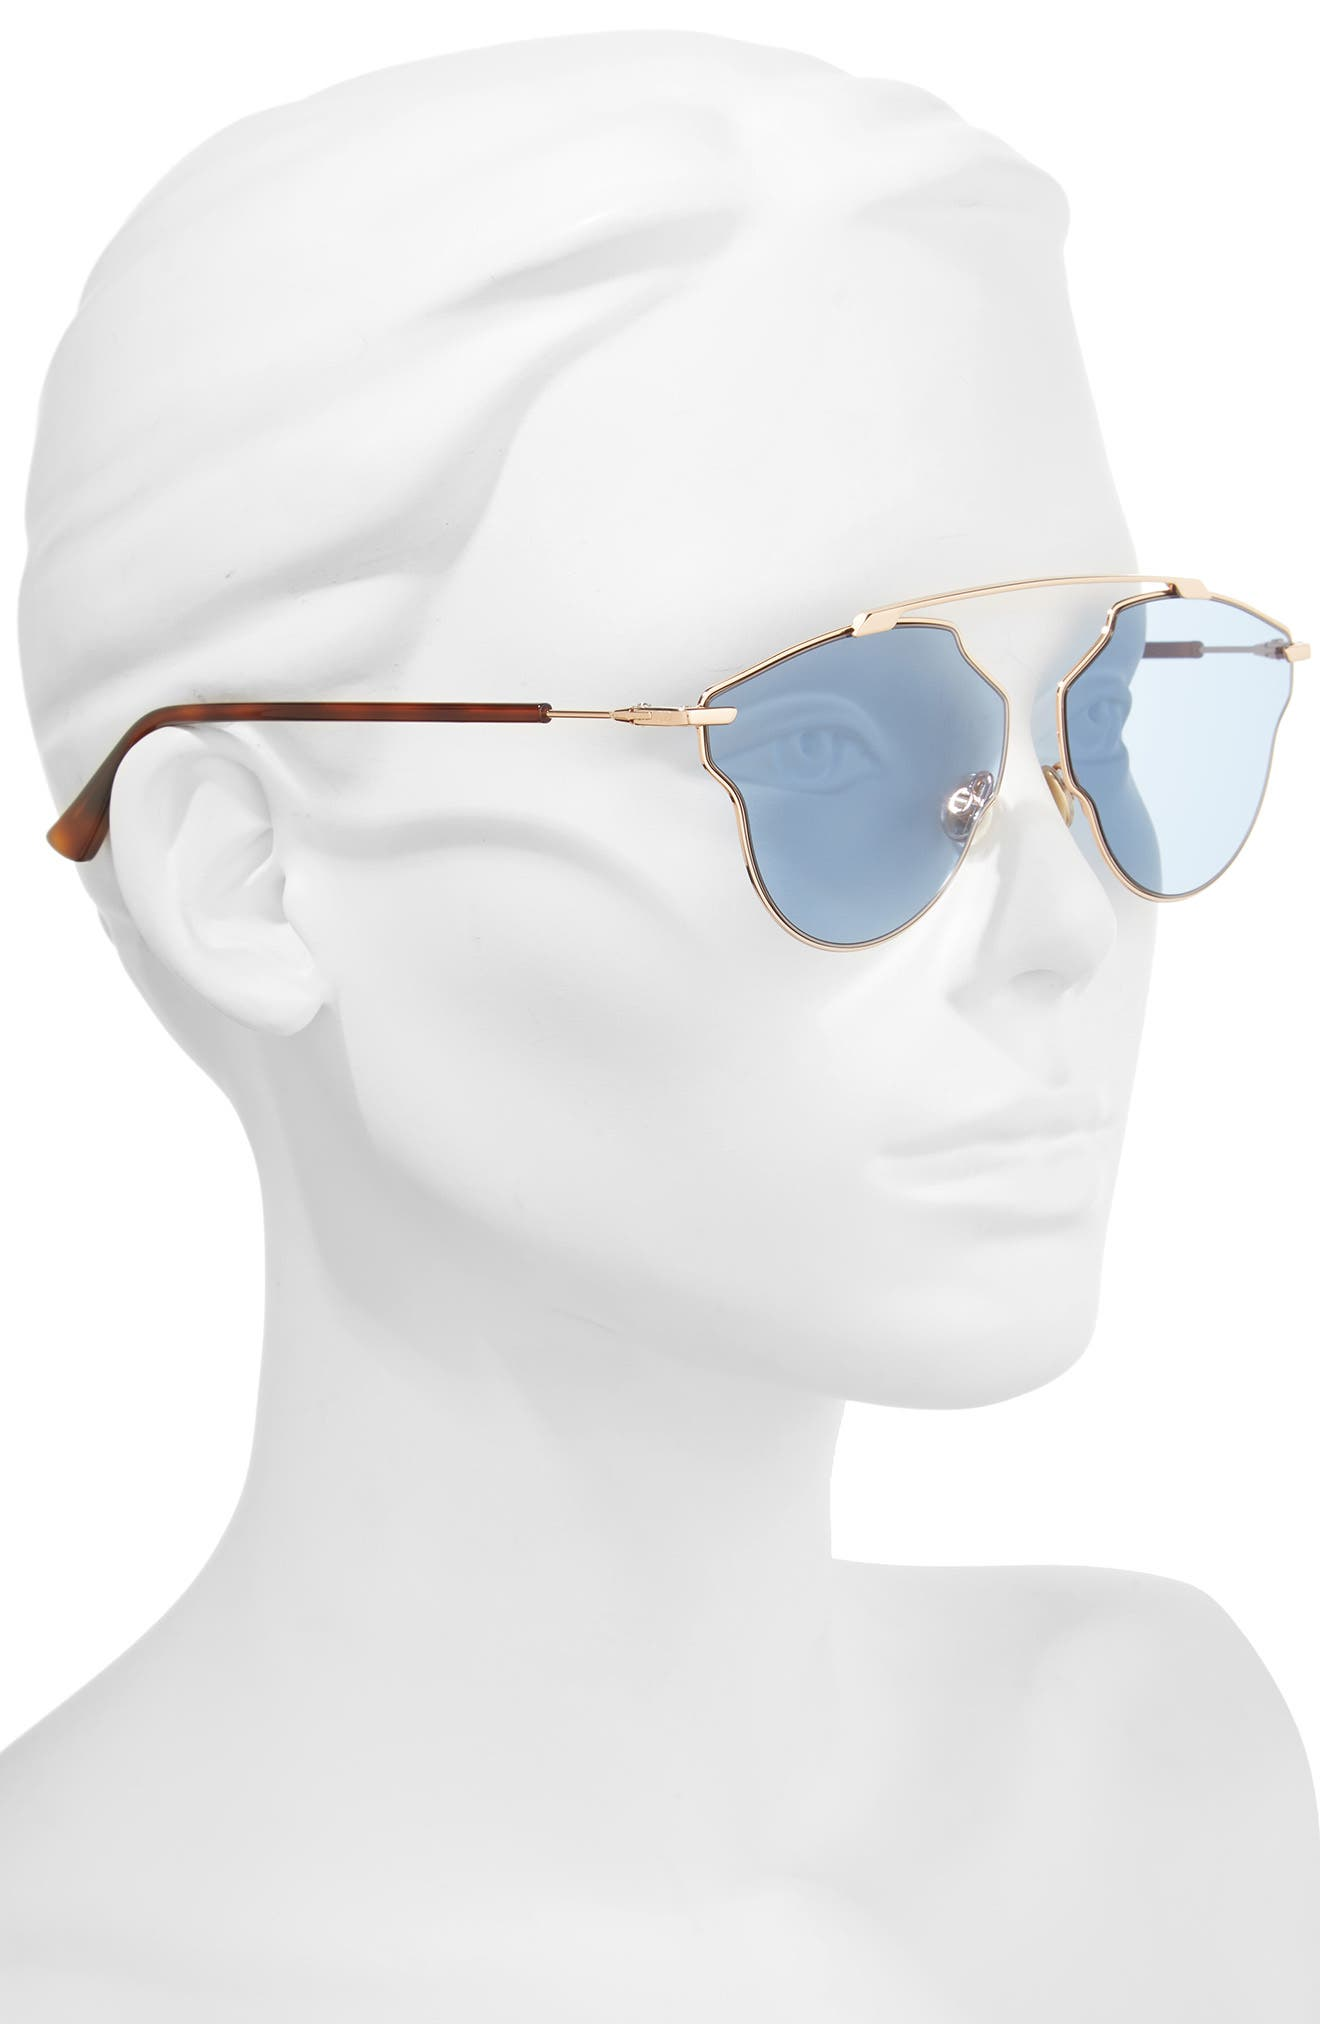 448 Dior 59mm Sunglasses,                             Alternate thumbnail 2, color,                             Gold/ Copper/ Blue